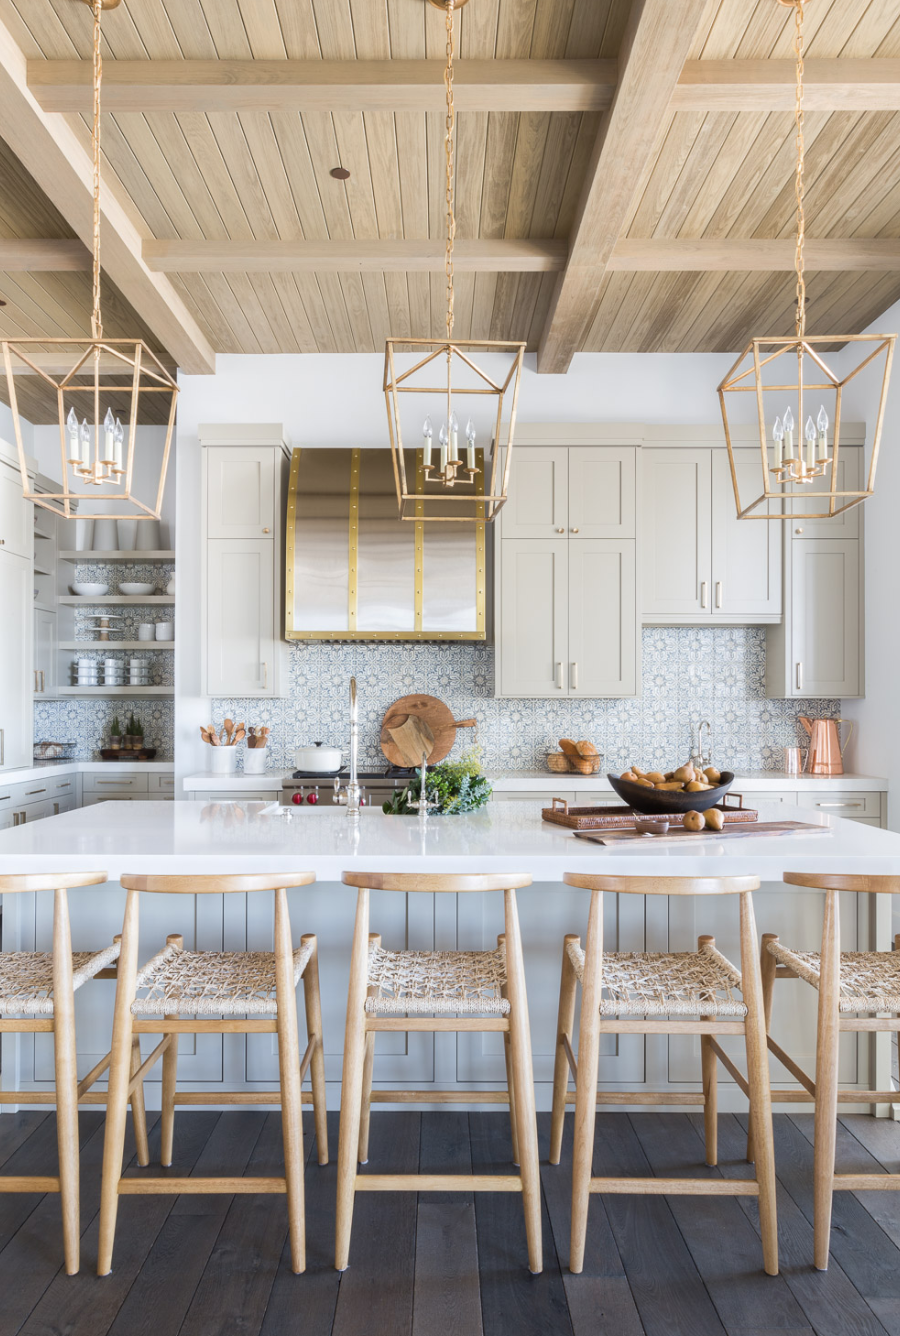 The 15 Most Beautiful Modern Farmhouse Kitchens On Pinterest Sanctuary Home Decor Home Decor Kitchen Modern Farmhouse Kitchens Kitchen Style